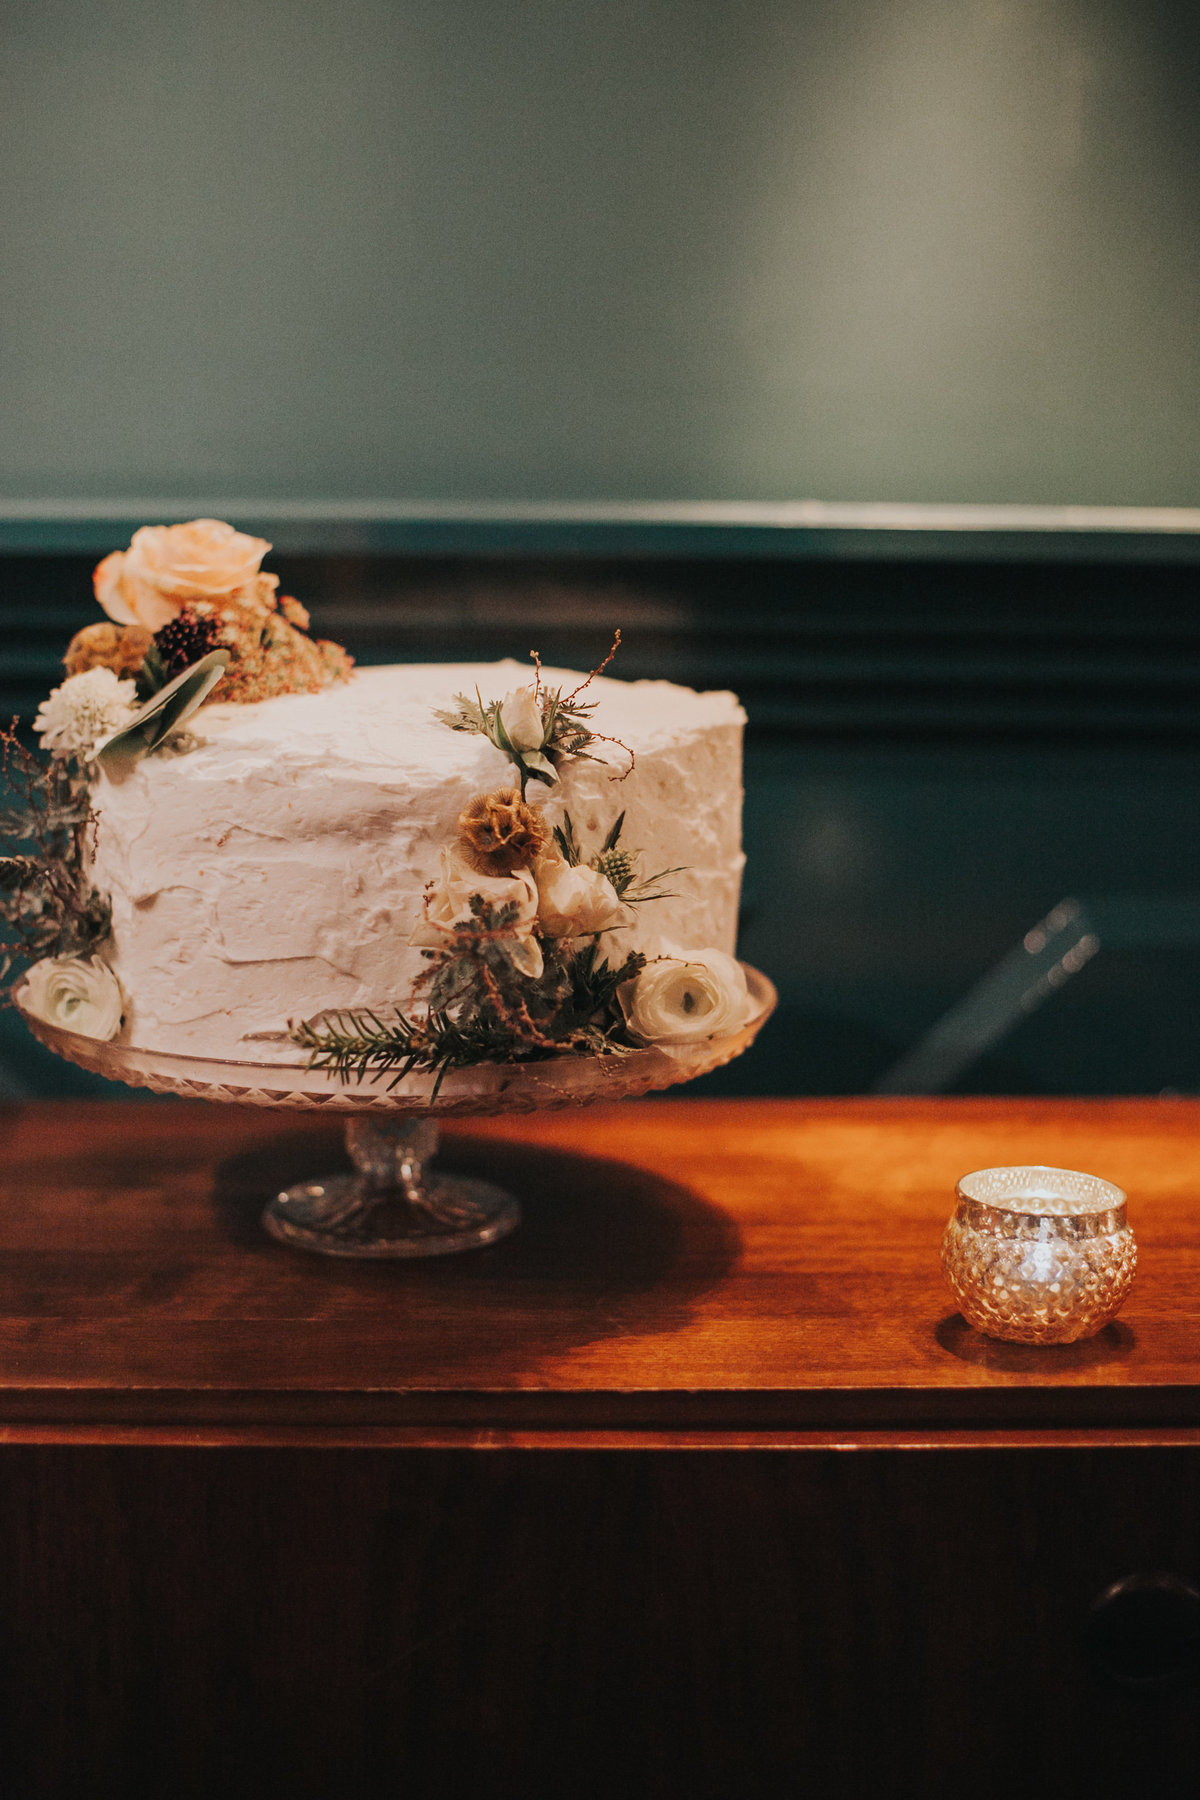 Simple wedding cake at The Fig House wedding reception